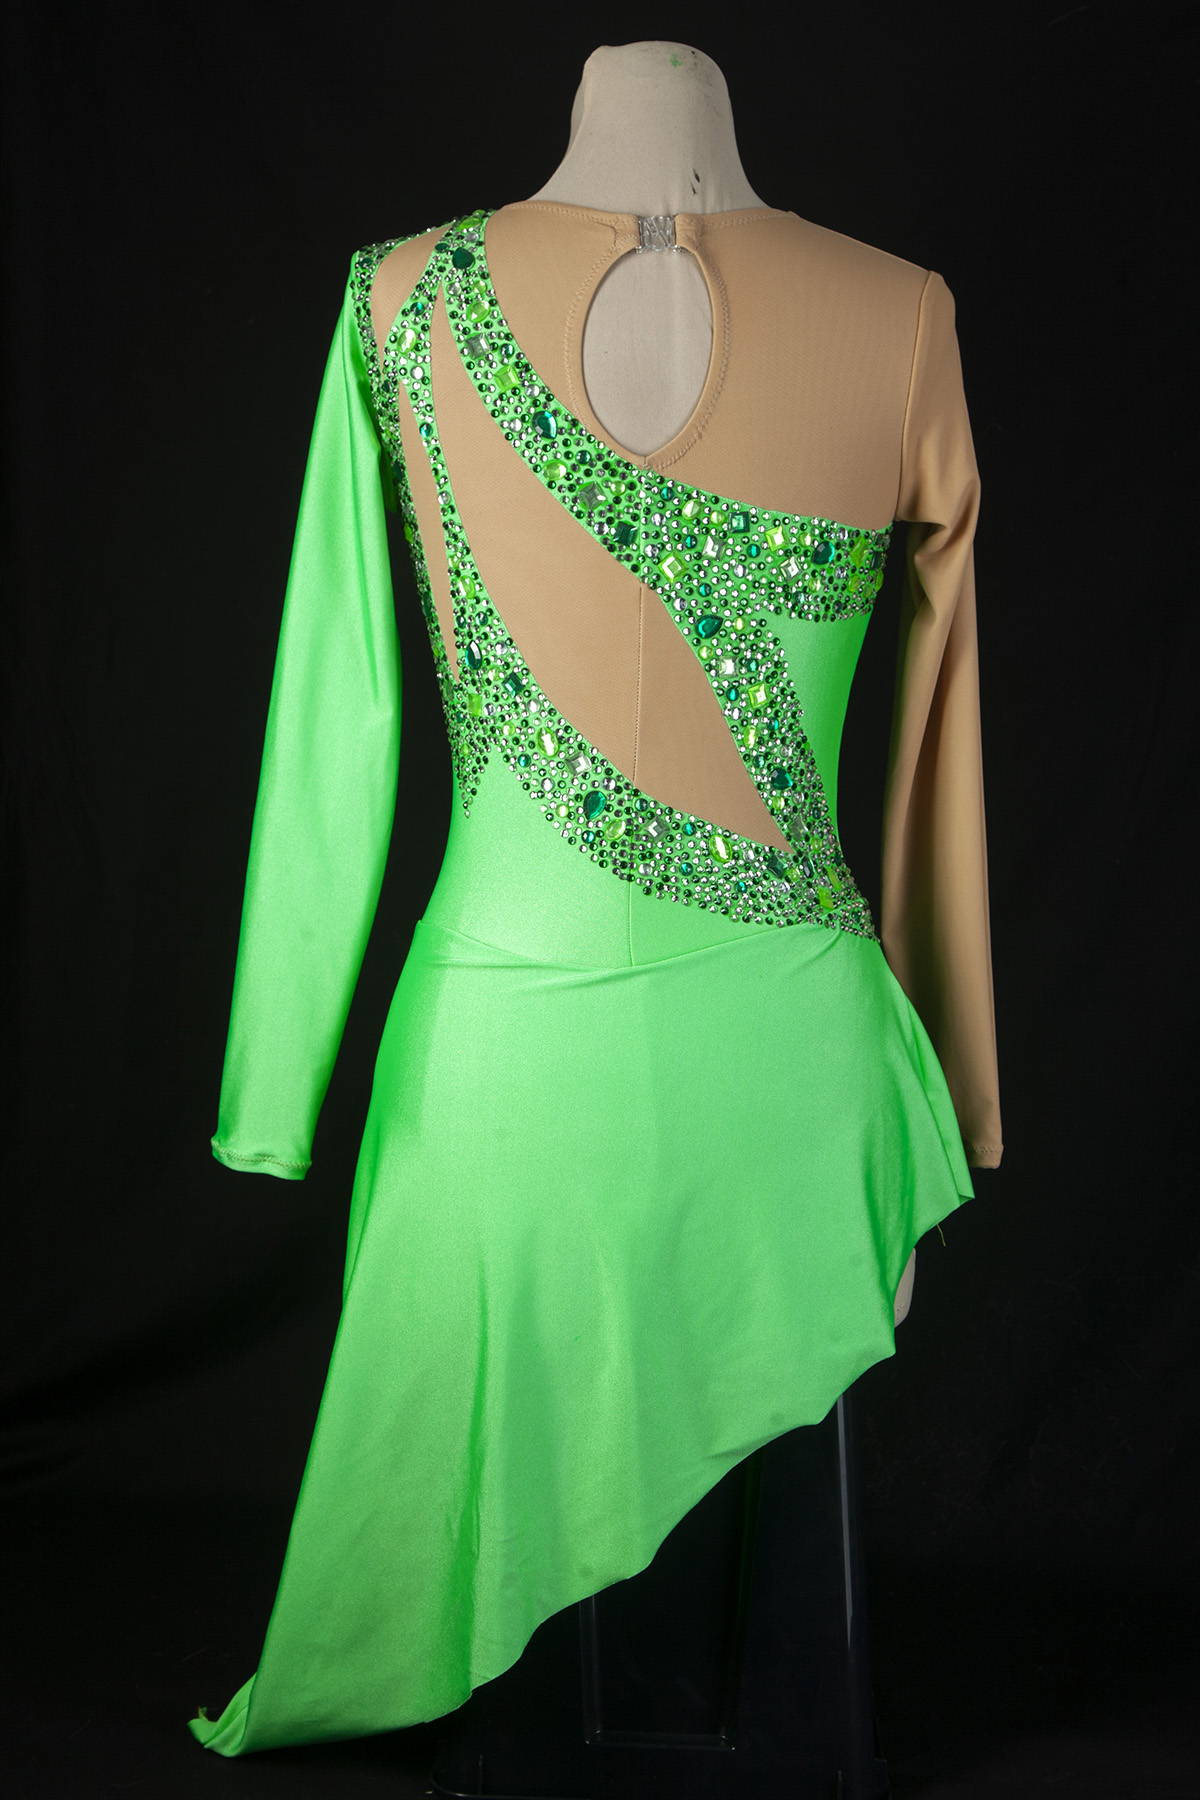 A formal, green figure skating dress, heavily encrusted with clear and green rhinestones.  Back view of the dress, against a black background.